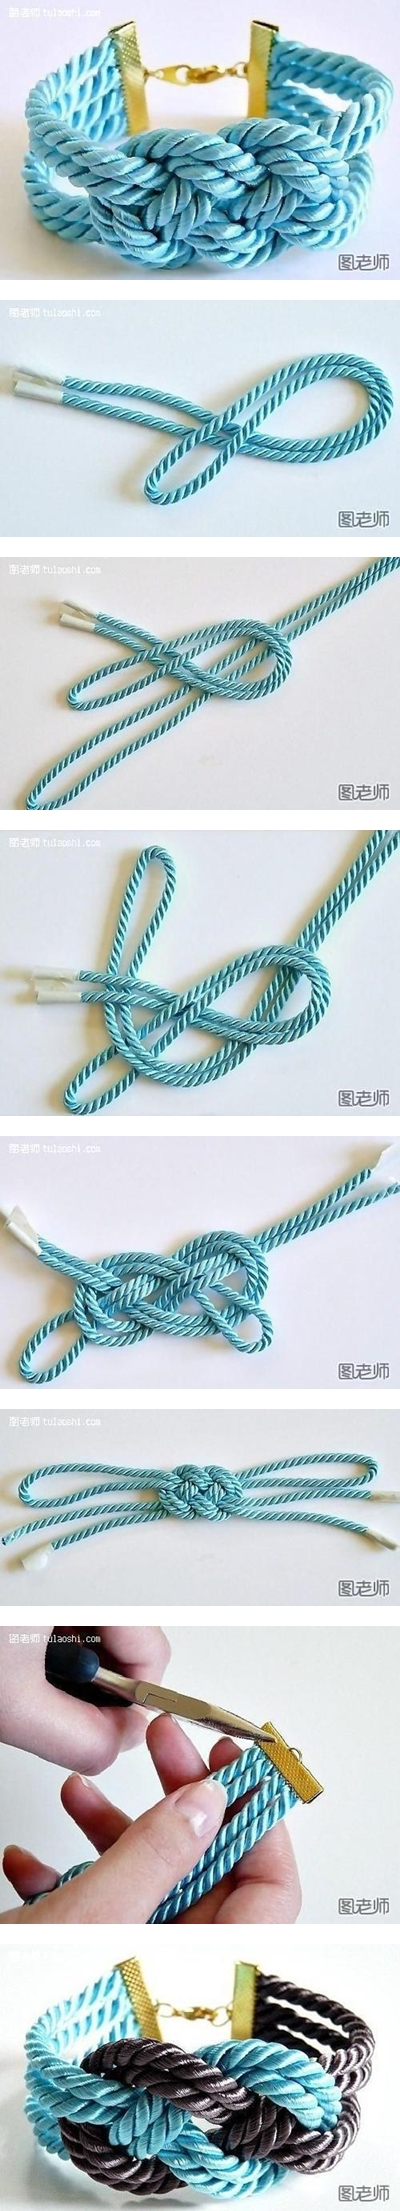 How to make colorful string bracelet step by step DIY instructions